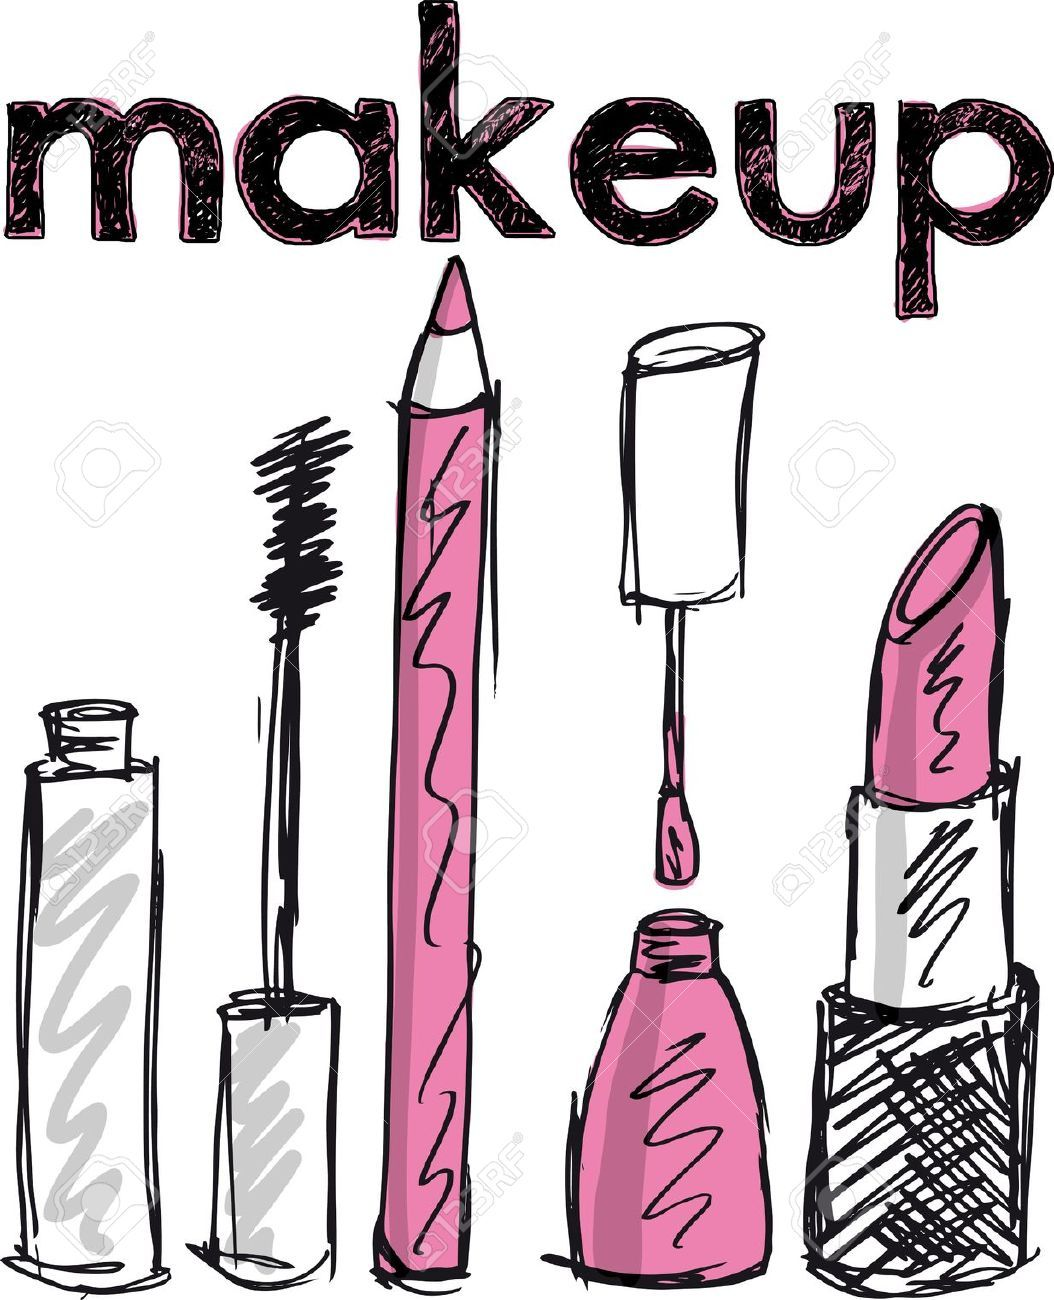 13214867 Sketch of Makeup products Vector illustration